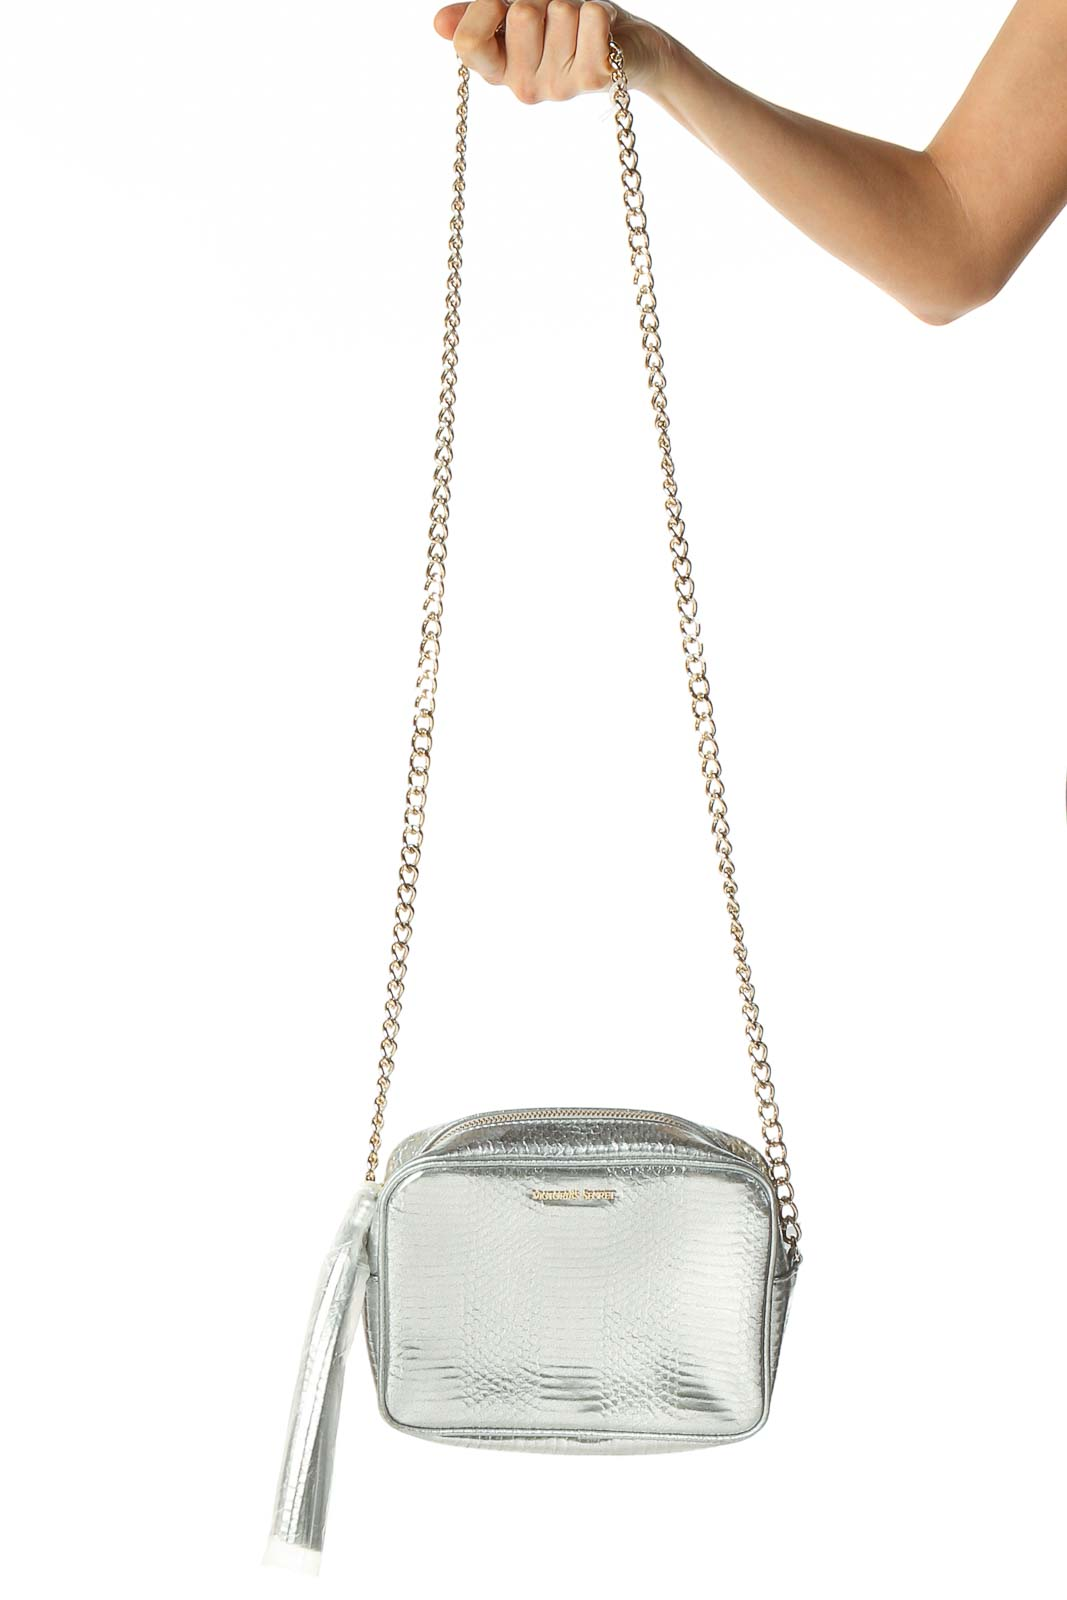 Silver Textured Crossbody Bag Front